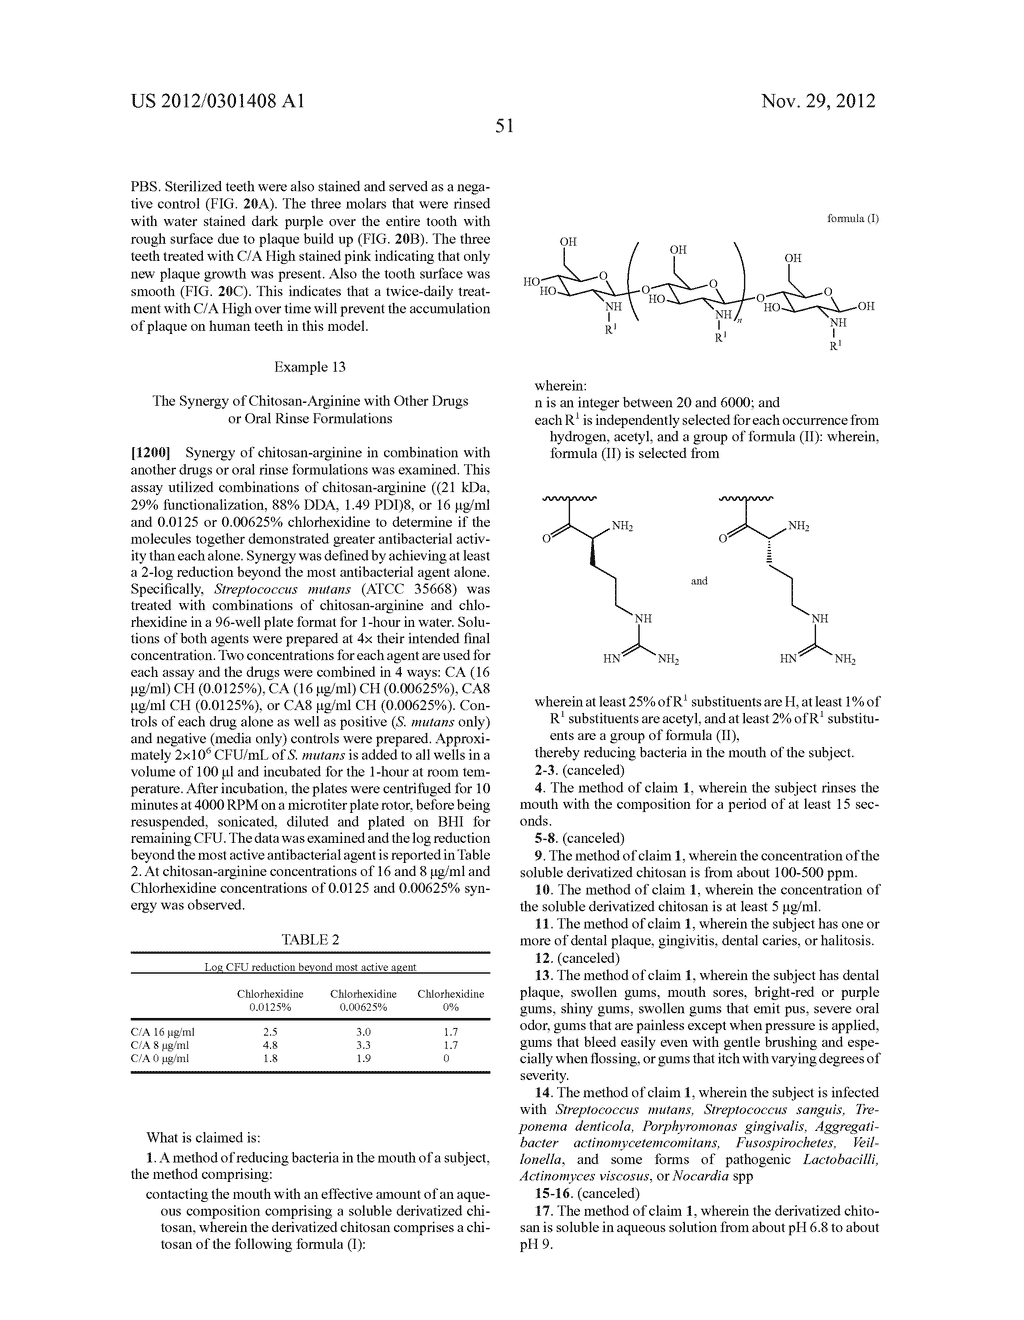 ORAL CARE METHODS AND COMPOSITIONS UTILIZING CHITOSAN-DERIVATIVE COMPOUNDS - diagram, schematic, and image 72